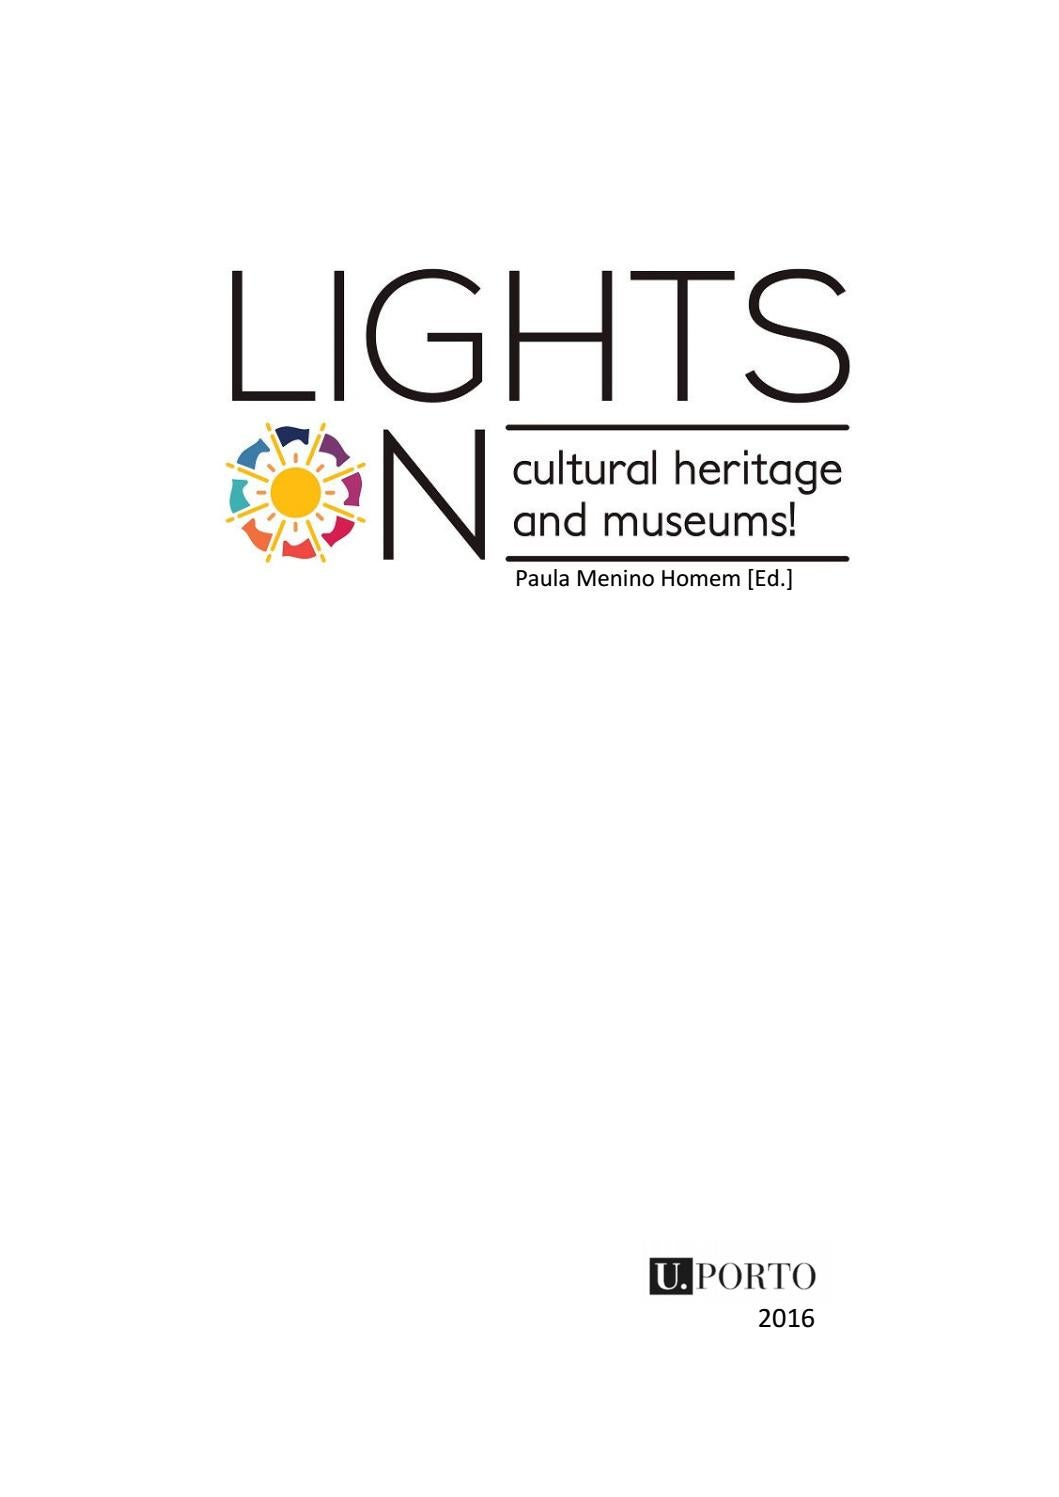 Lights on cultural heritage & museums 2016 by Paula Menino